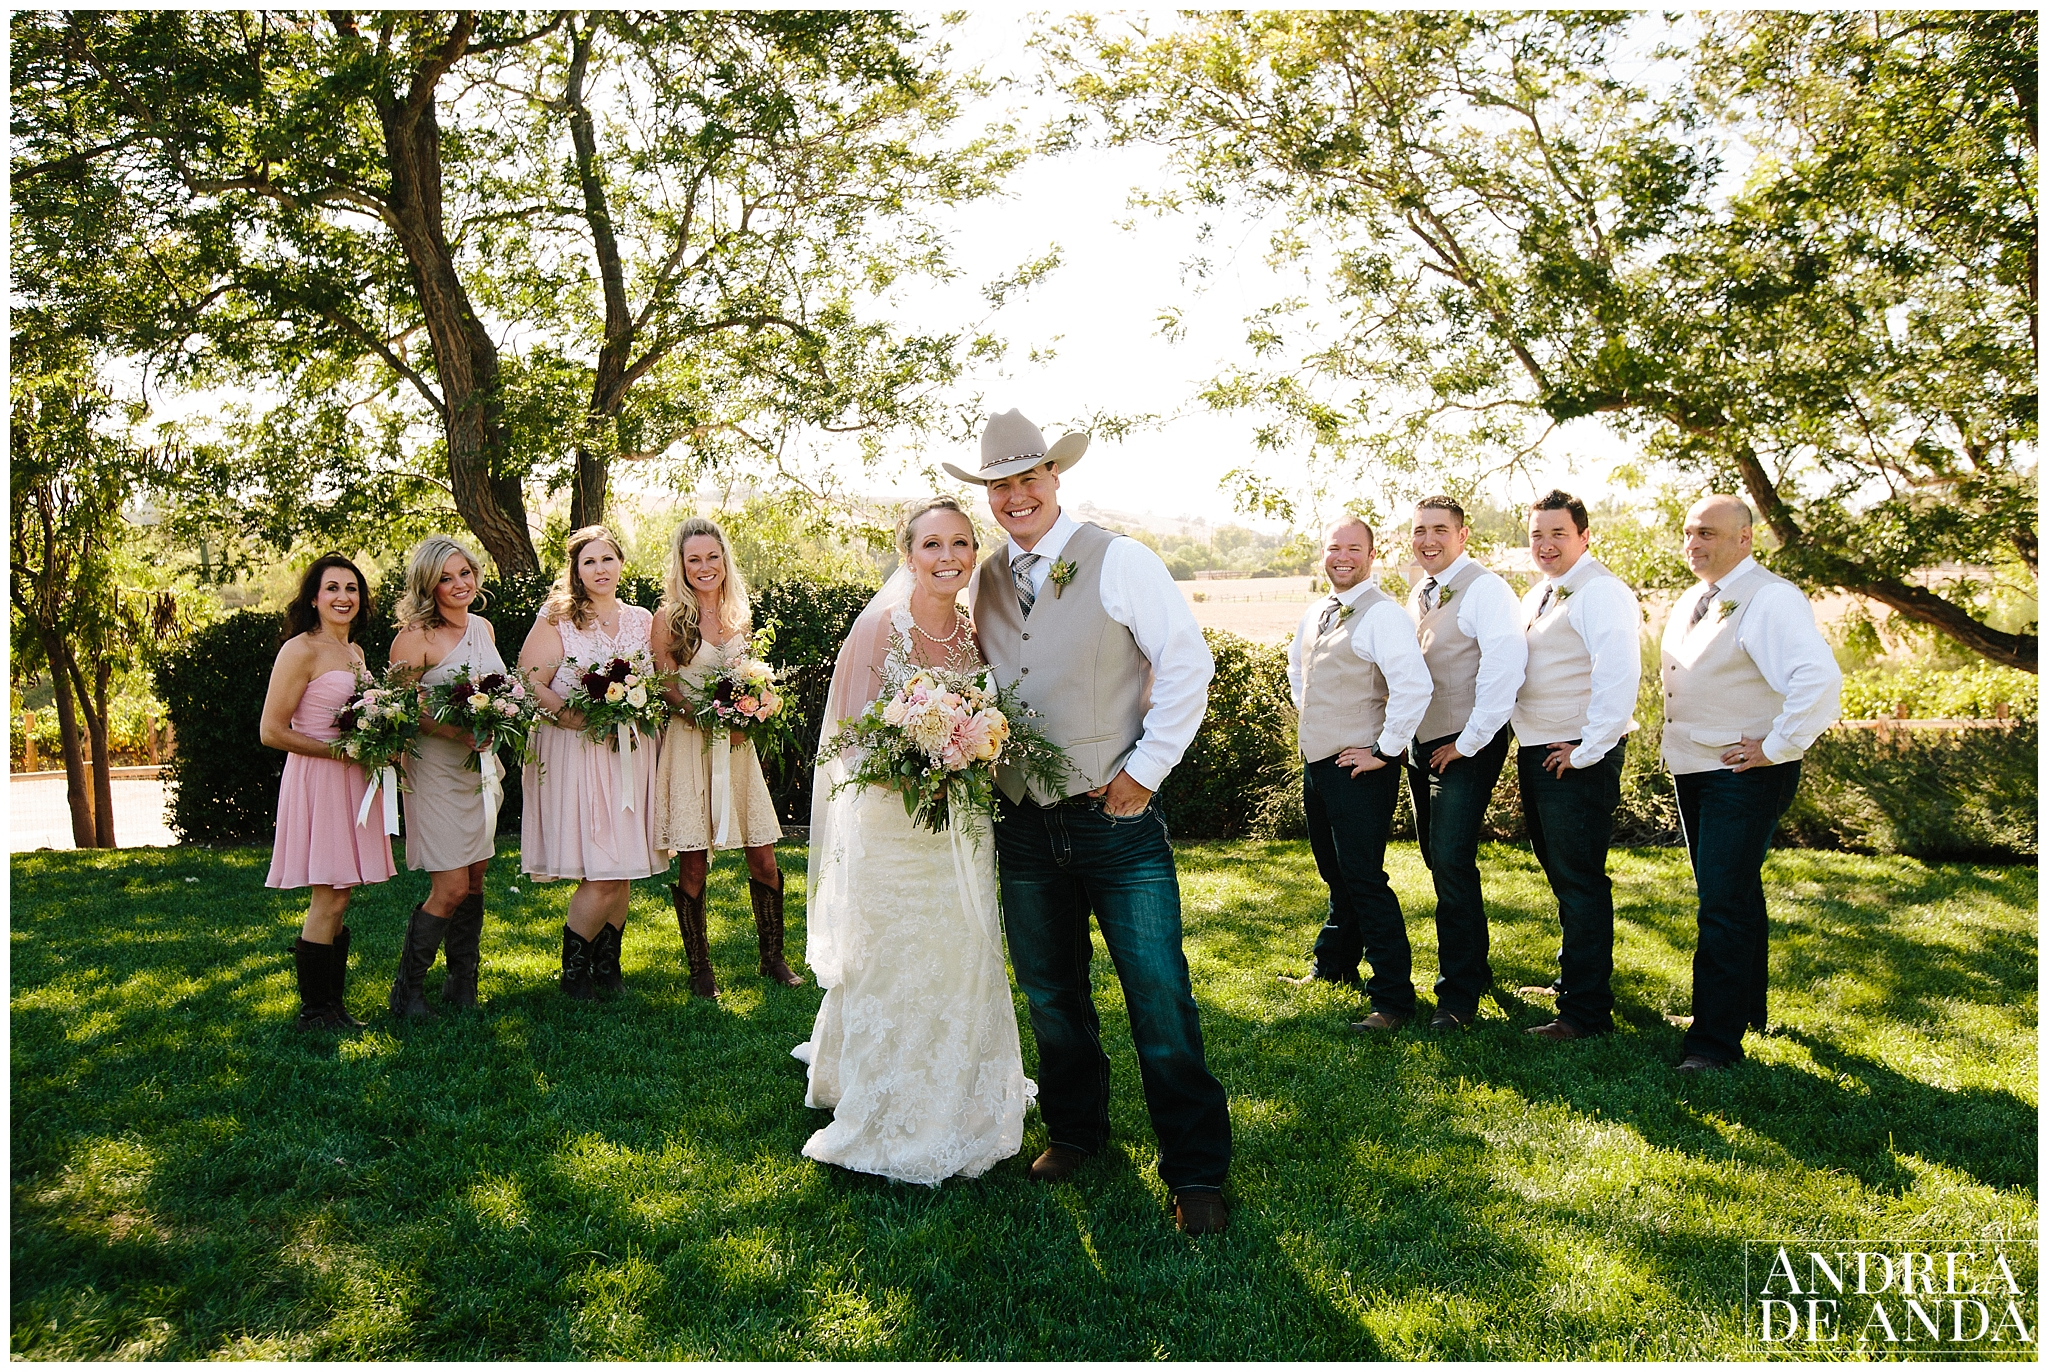 Santa Ynez Valley back yard wedding_Andrea de Anda Photography__0021.jpg